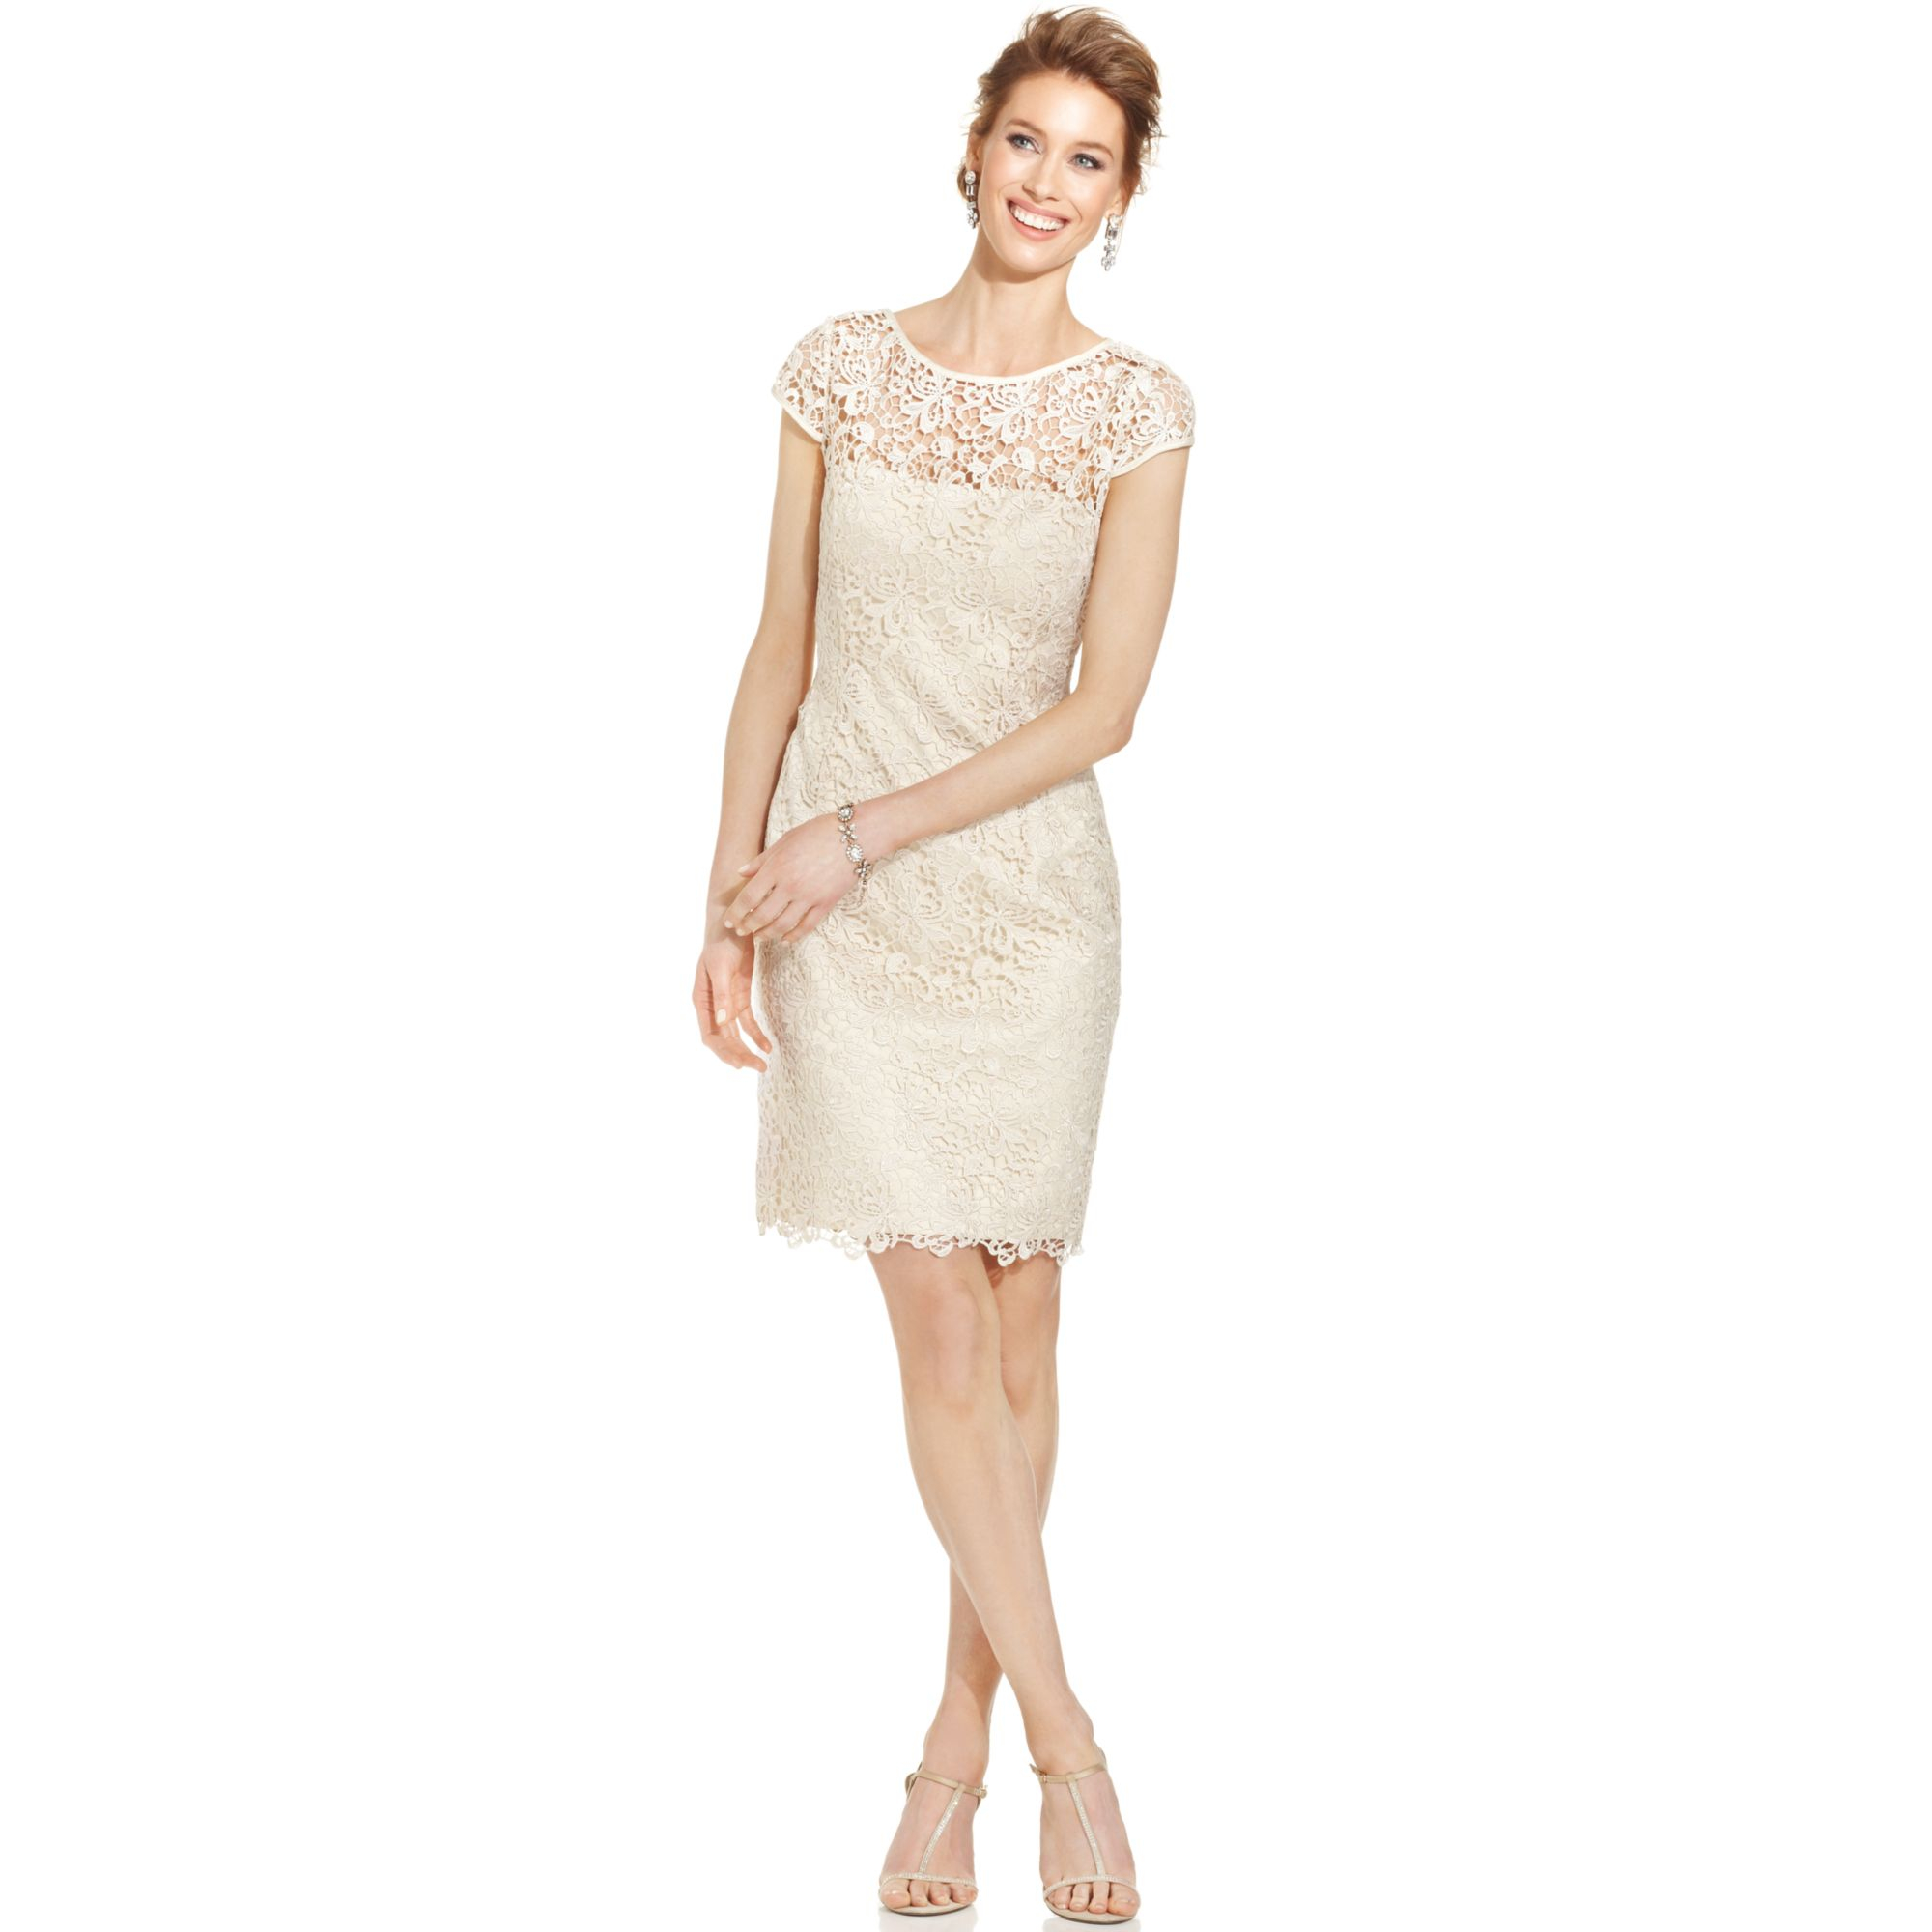 eed6c532900b Gallery. Previously sold at: Macy's · Women's Adrianna Papell Lace Dress  Women's Adrianna Papell Sheath Dress